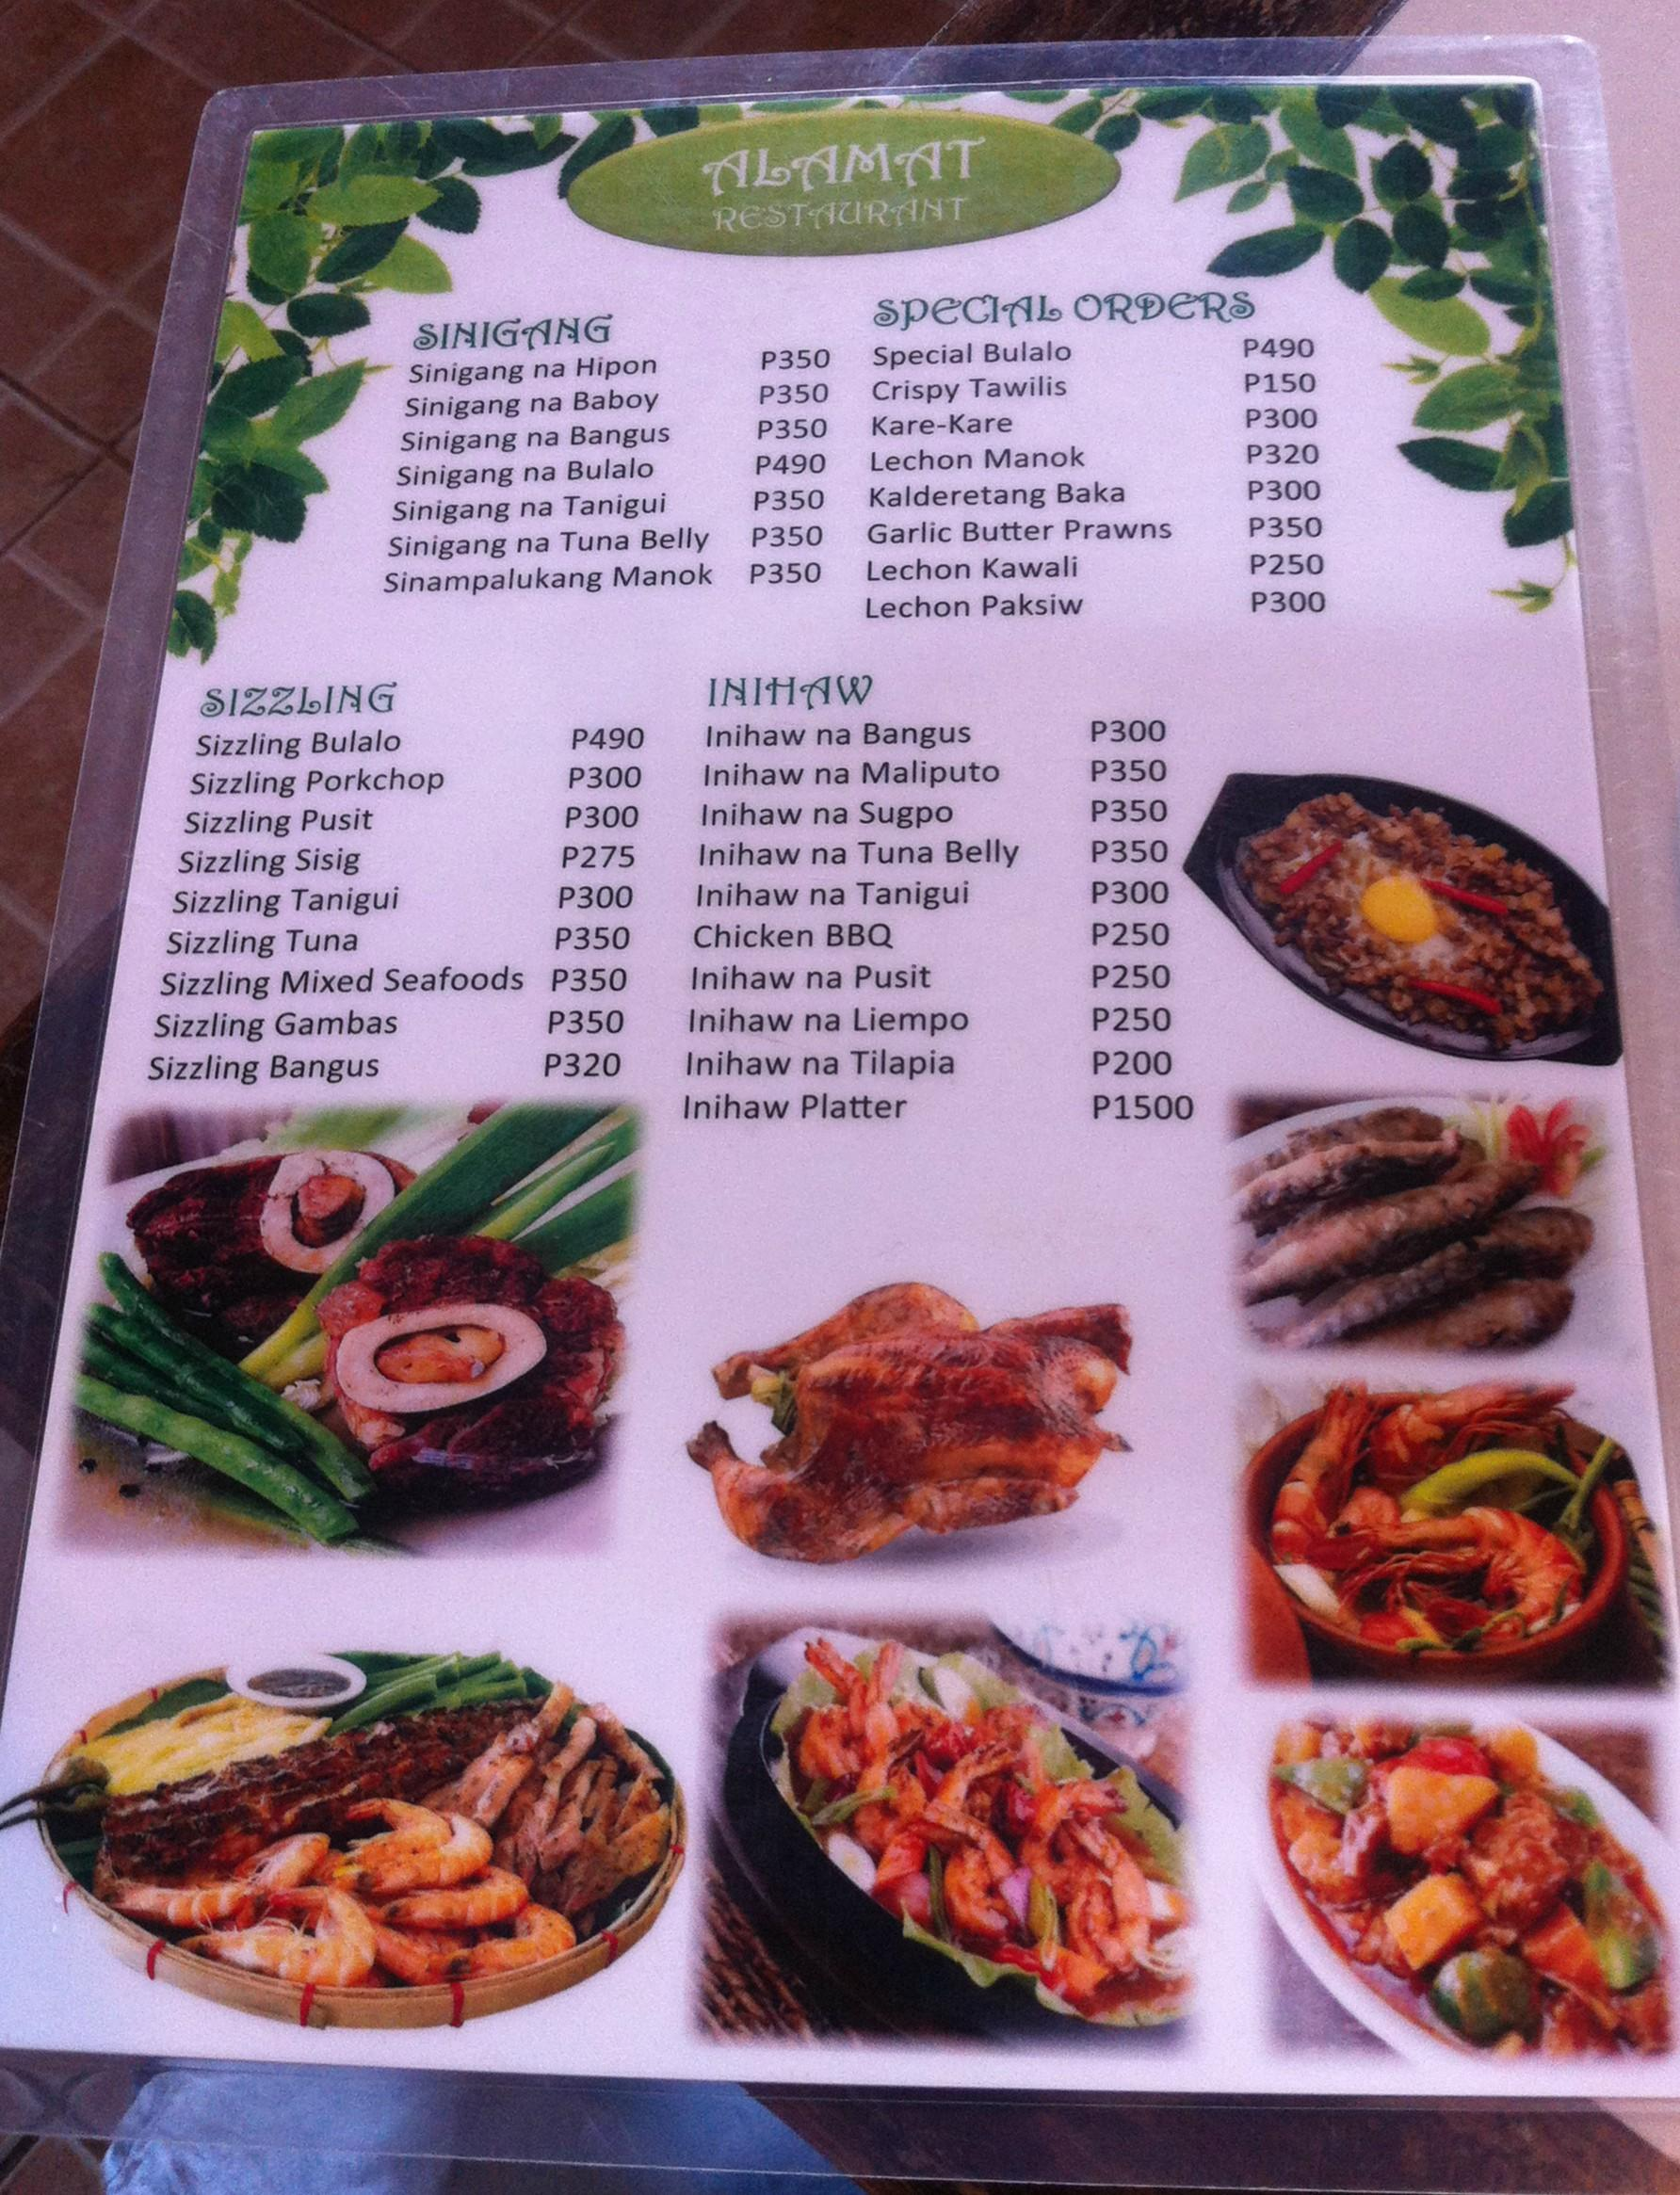 http://blog.cebu-oh.com/local/2017/01/photo/Alamat_Menu.jpg